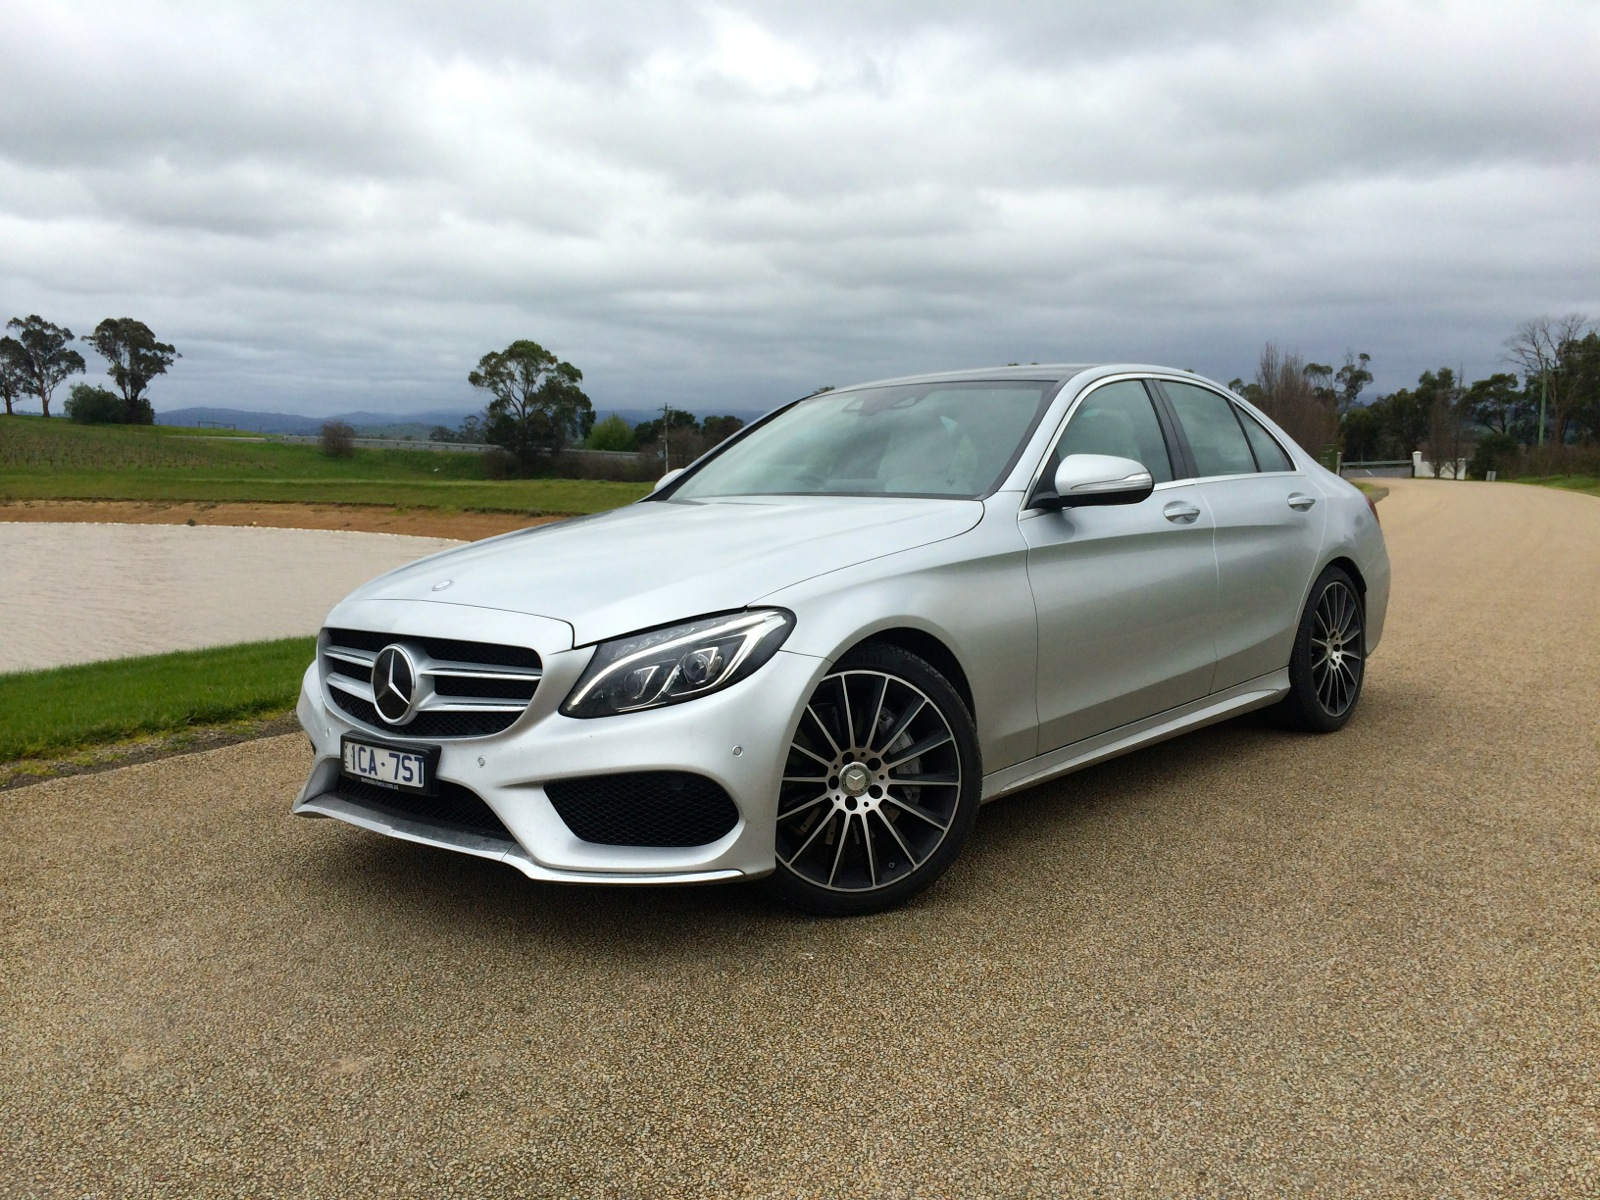 2015 mercedes benz c class review photos caradvice for Mercedes benz of louisville